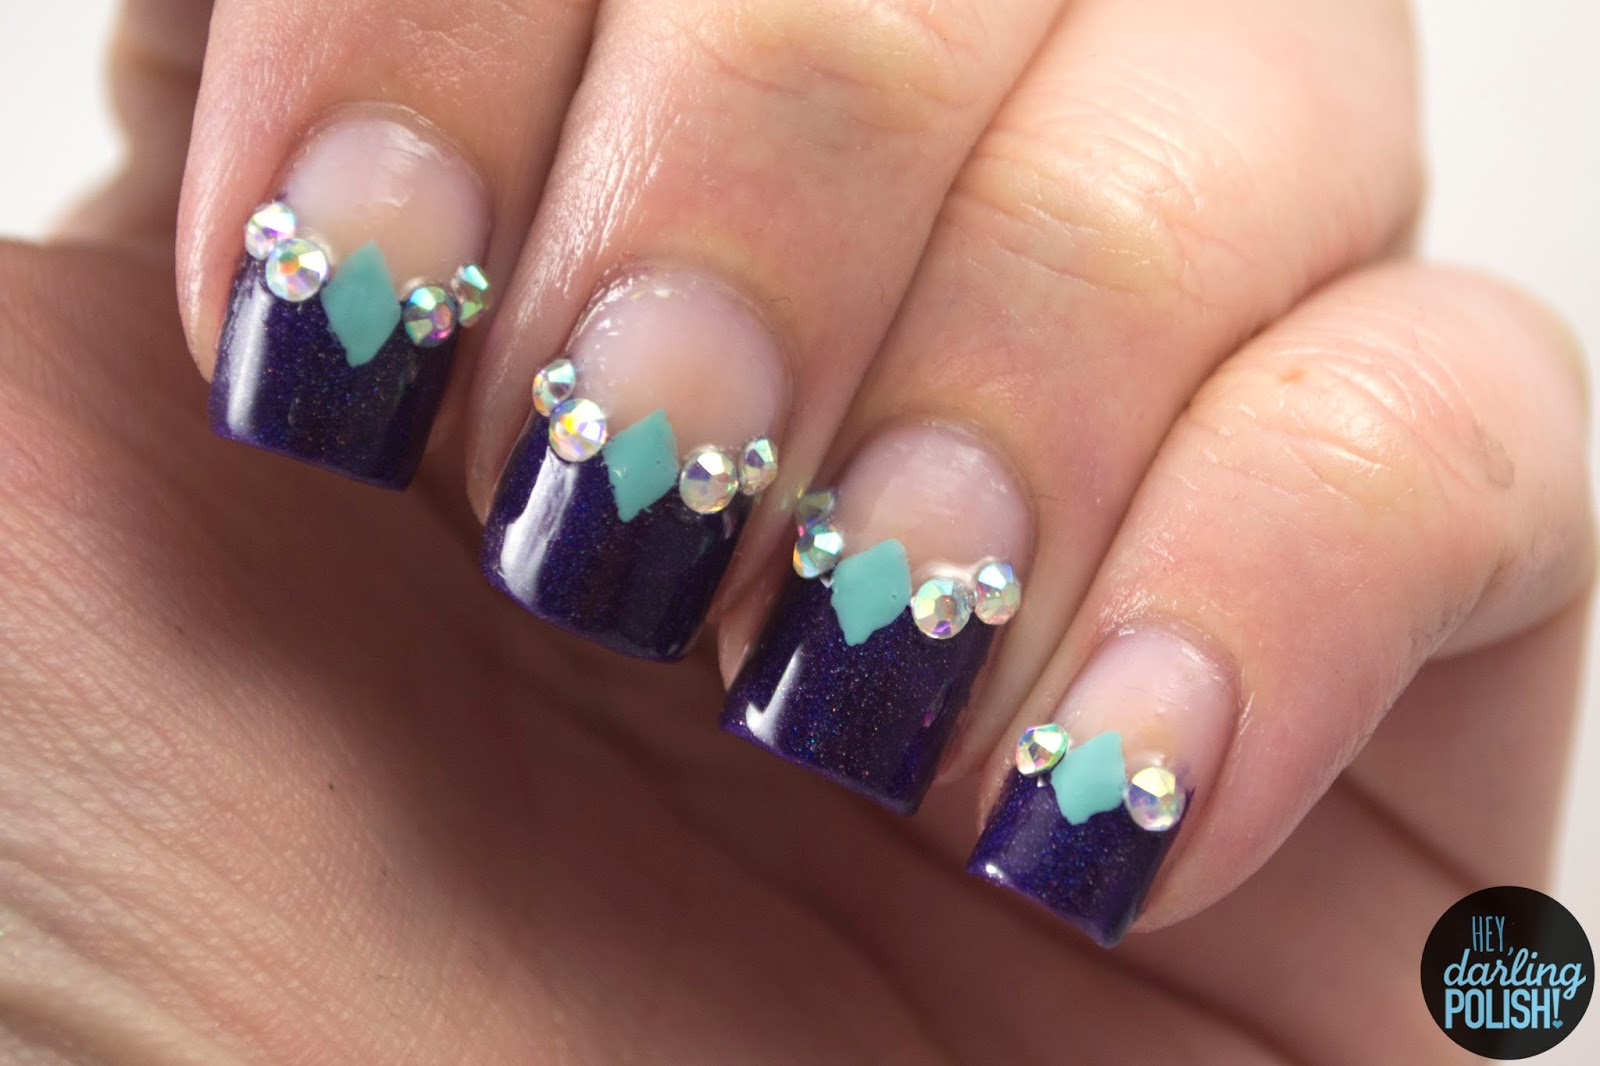 nails, nail art, nail polish, polish, i love nail polish, grape-alicious, negative space, rhinestones, theme buffet